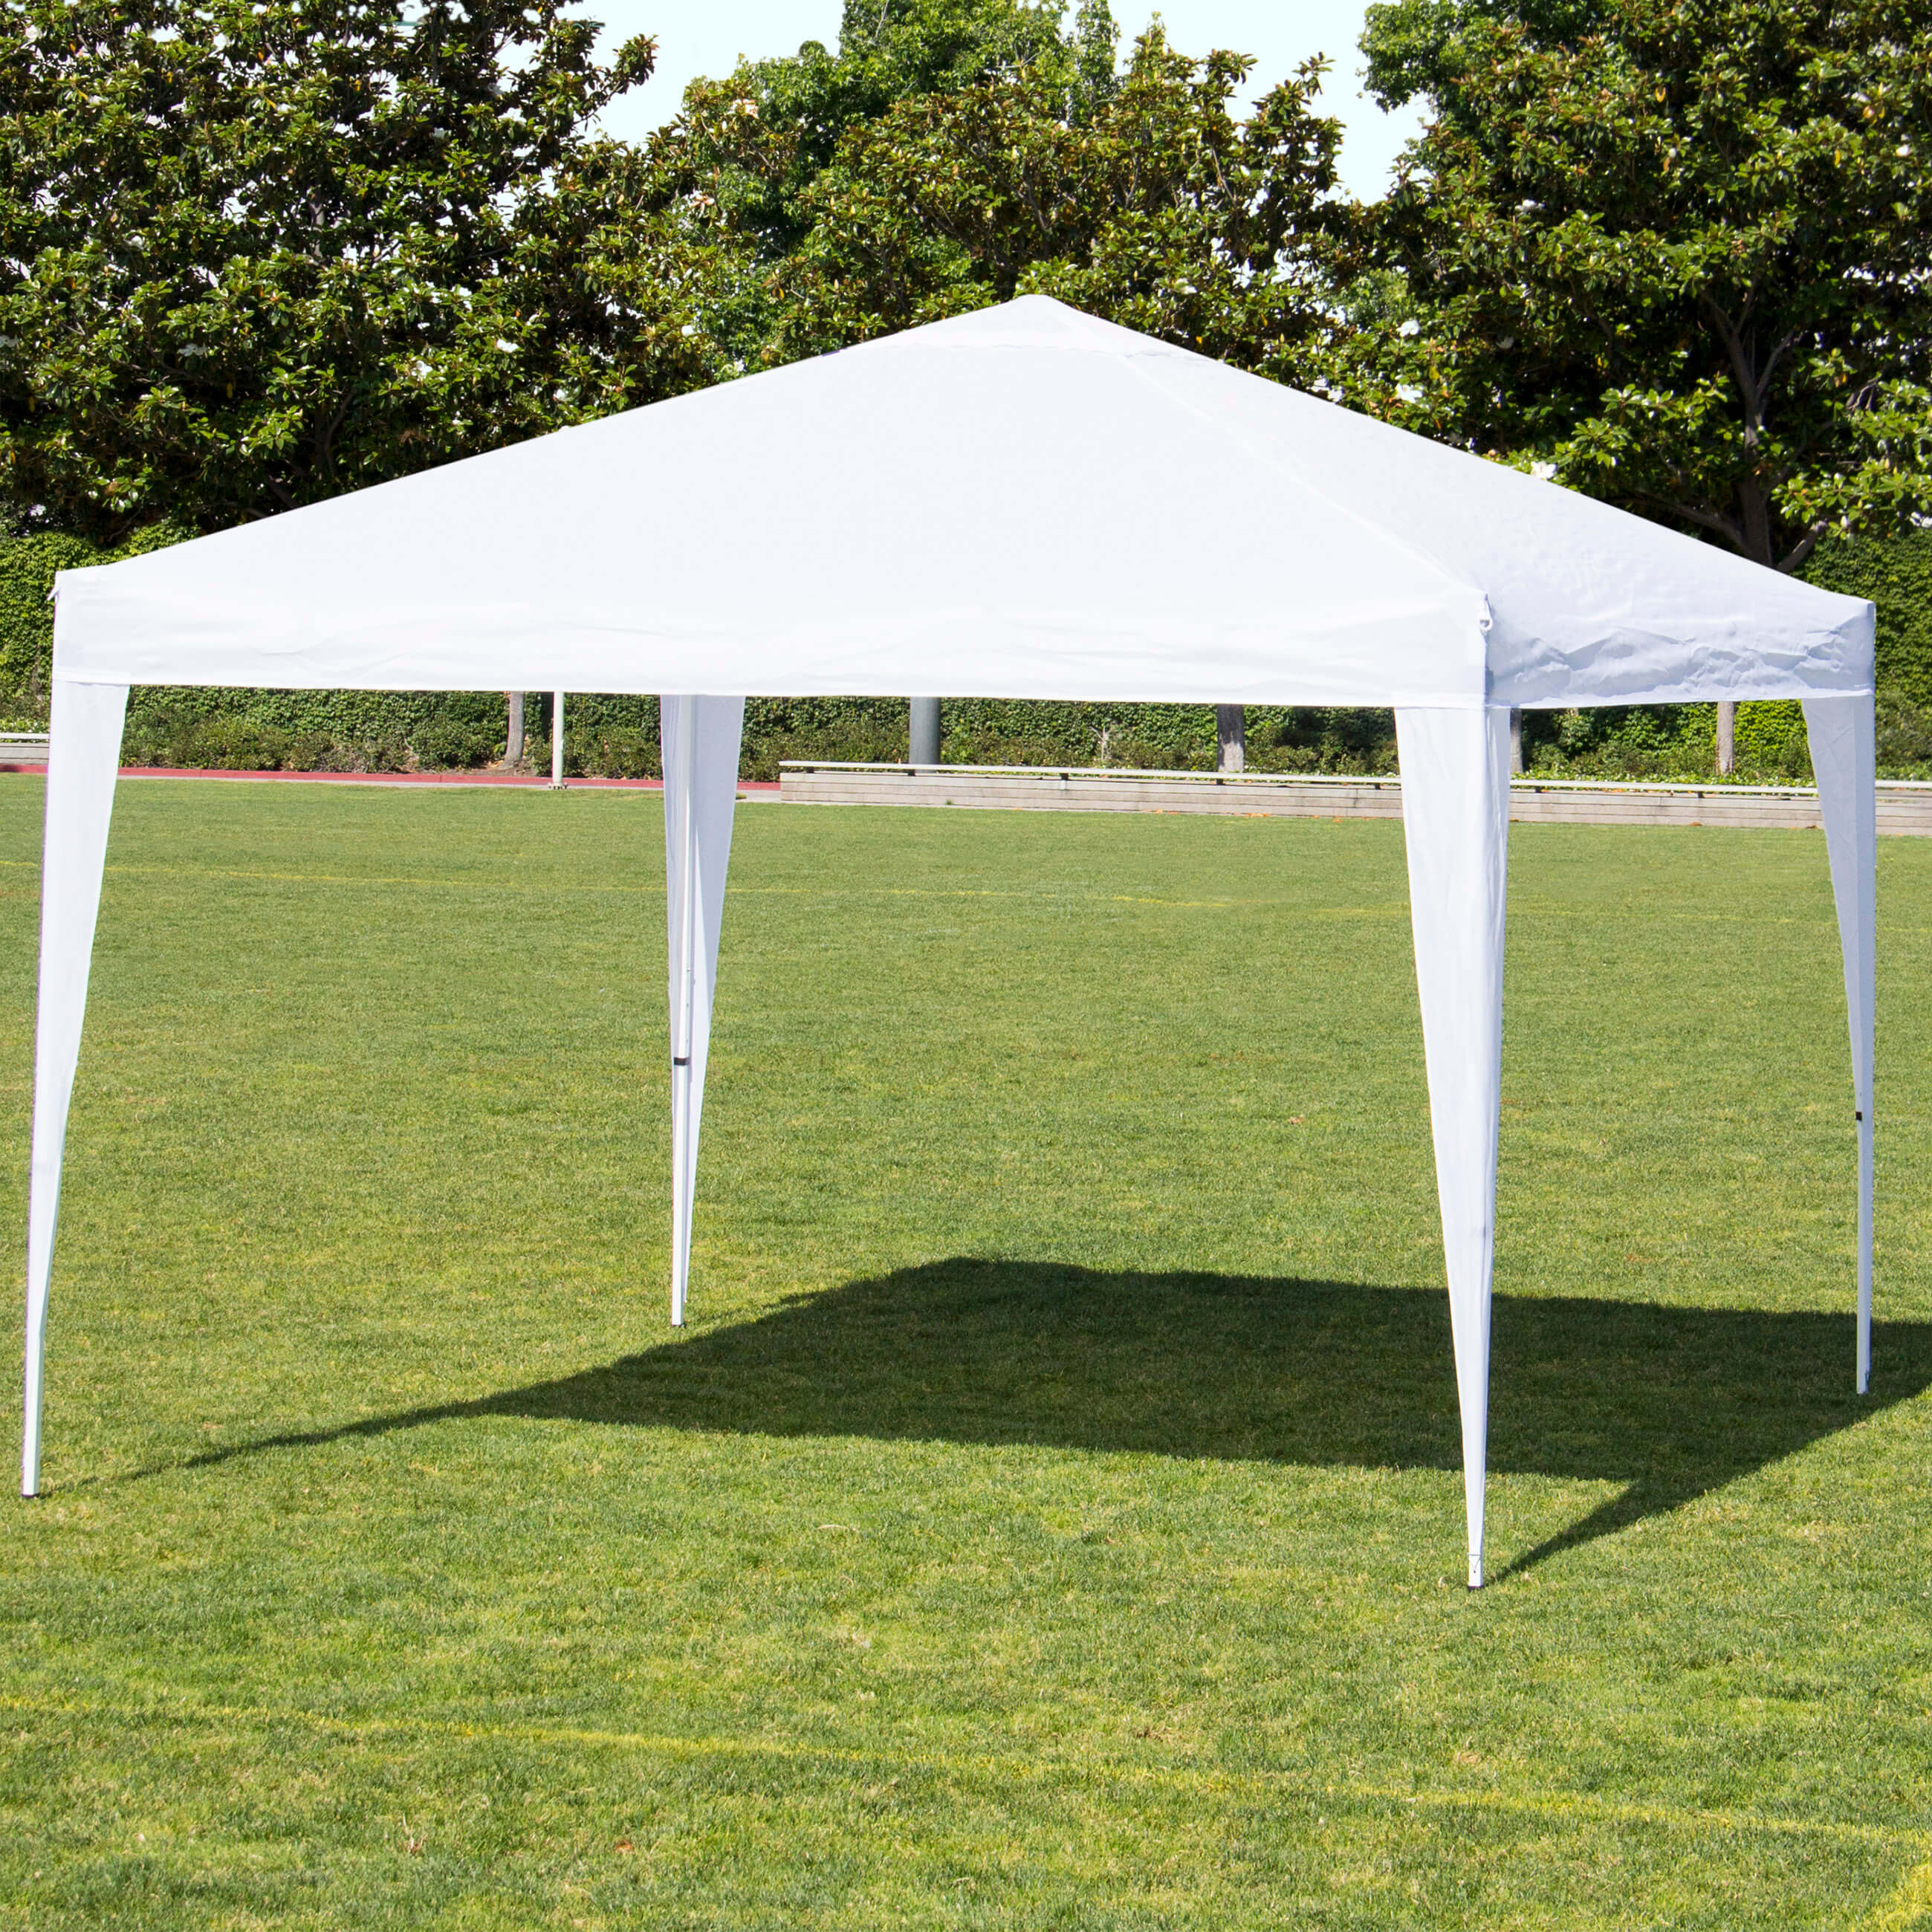 Tents & Canopies in Hillside